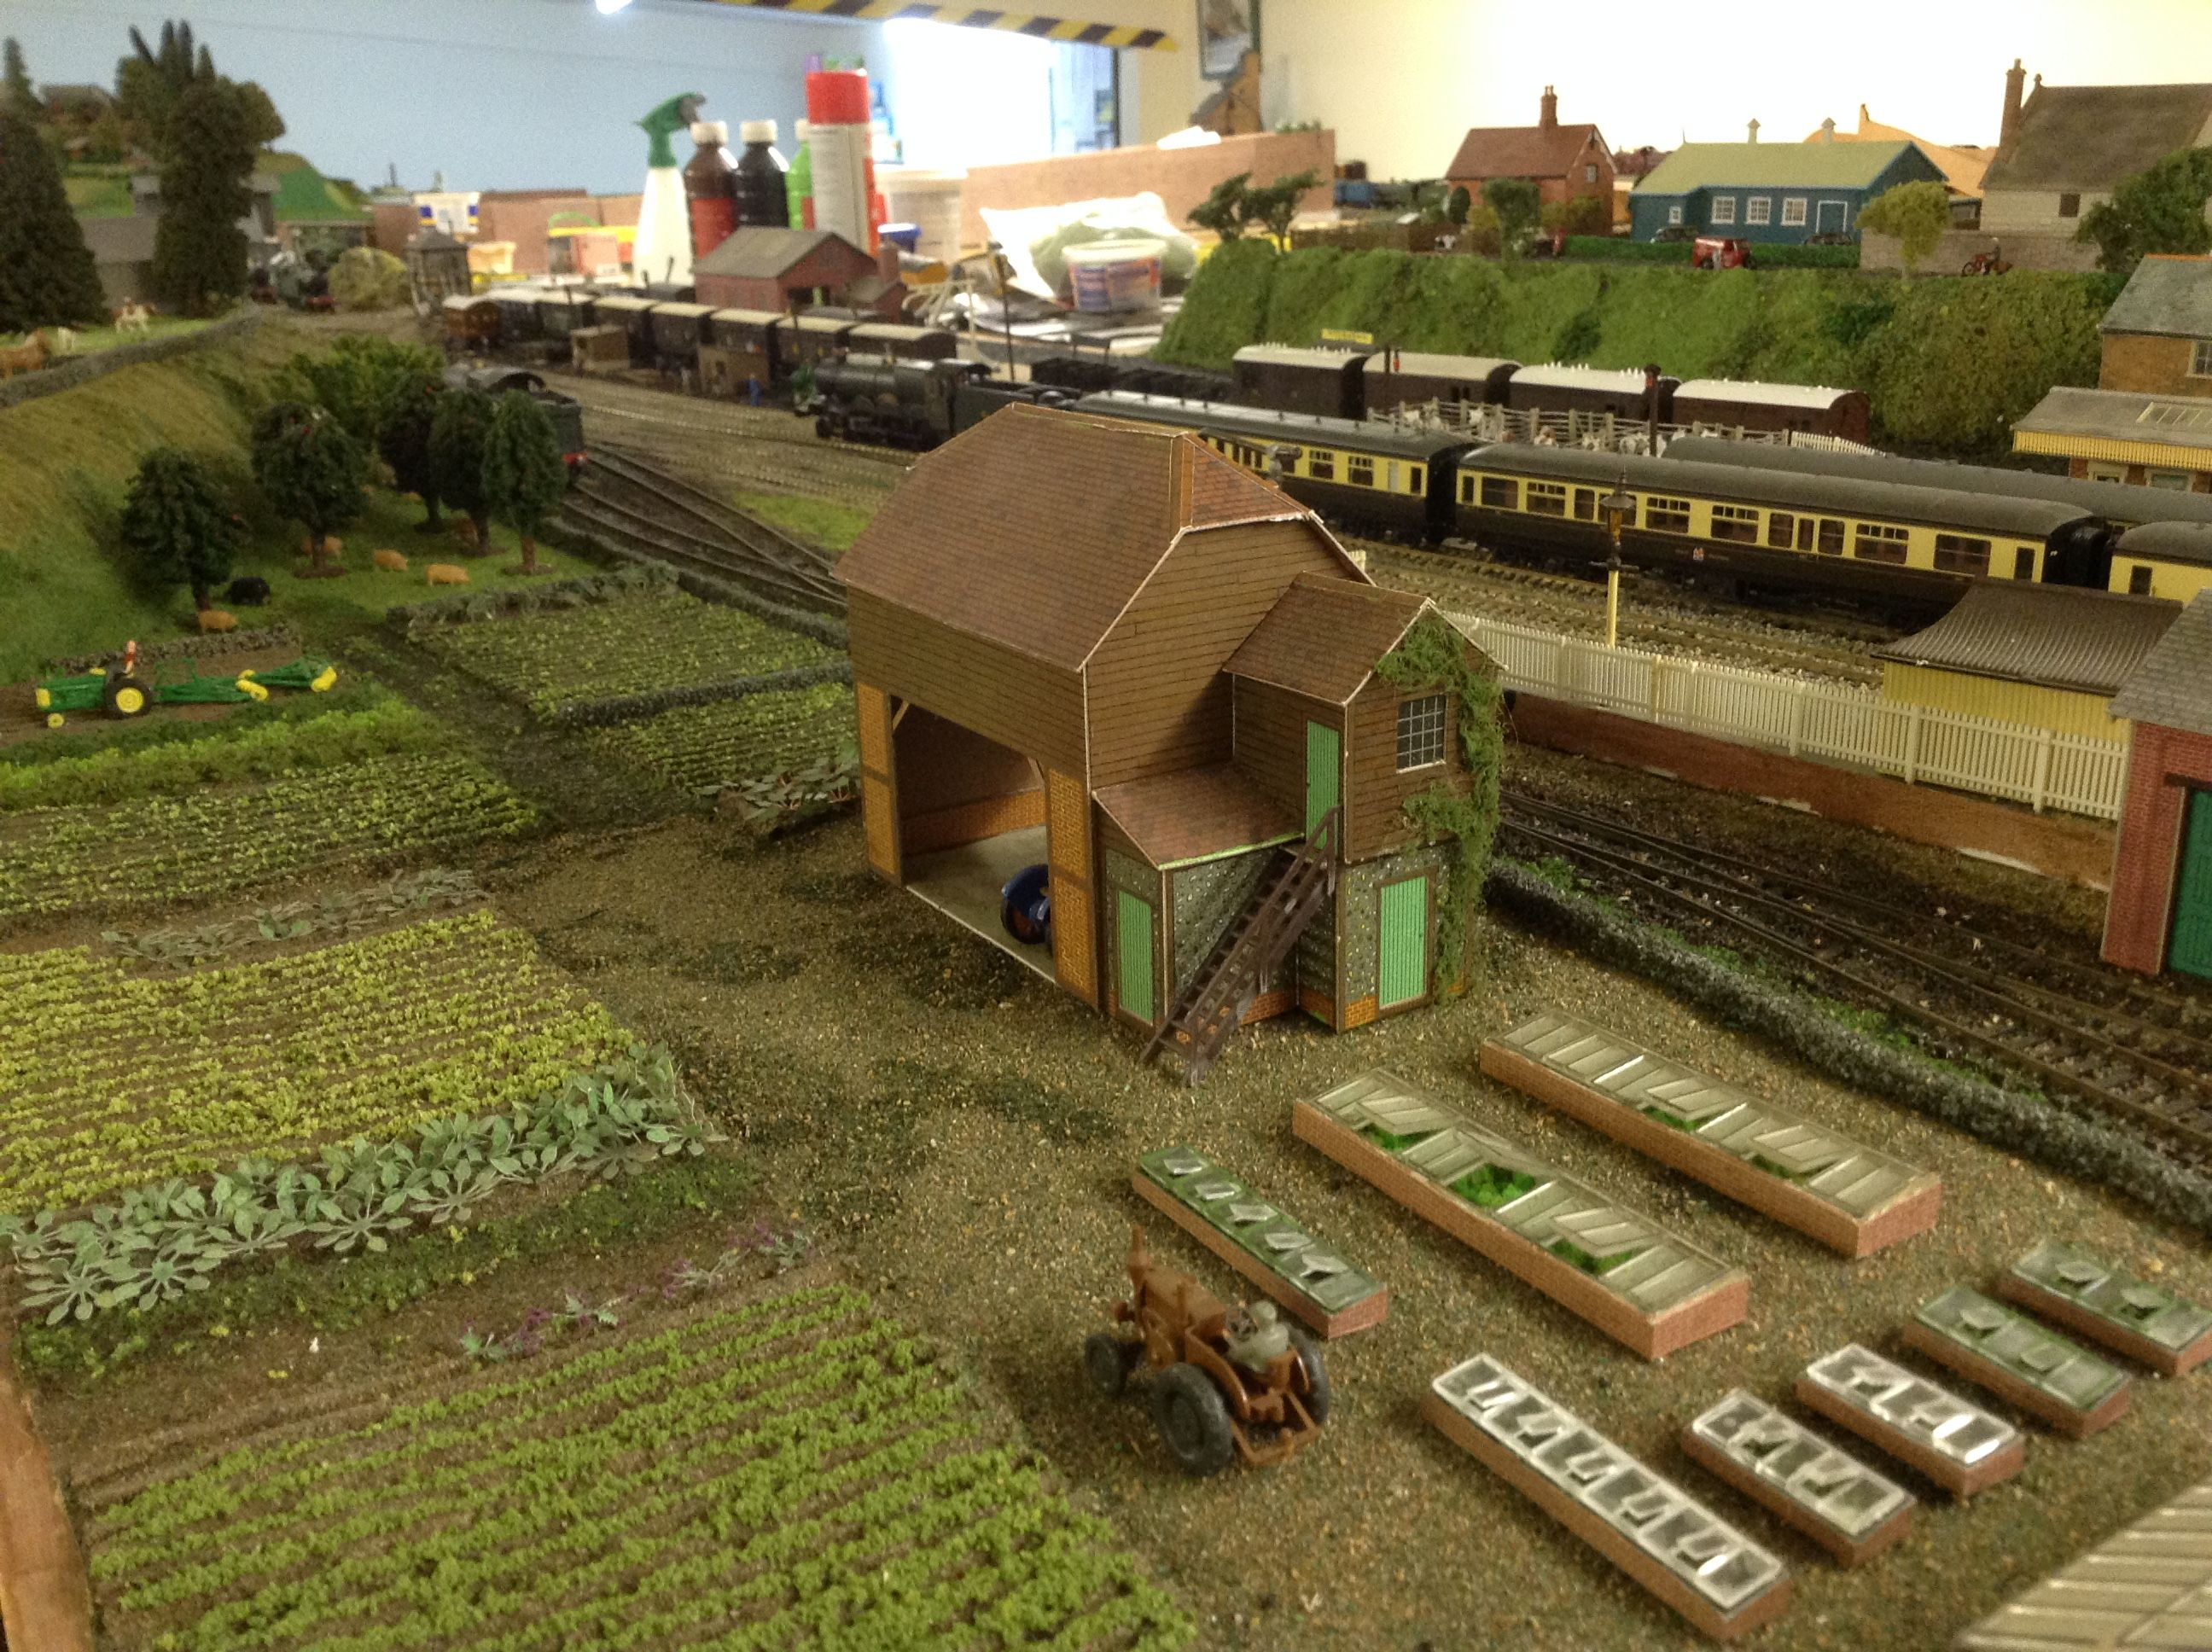 the market garden barn aspire ts and models shop layout model